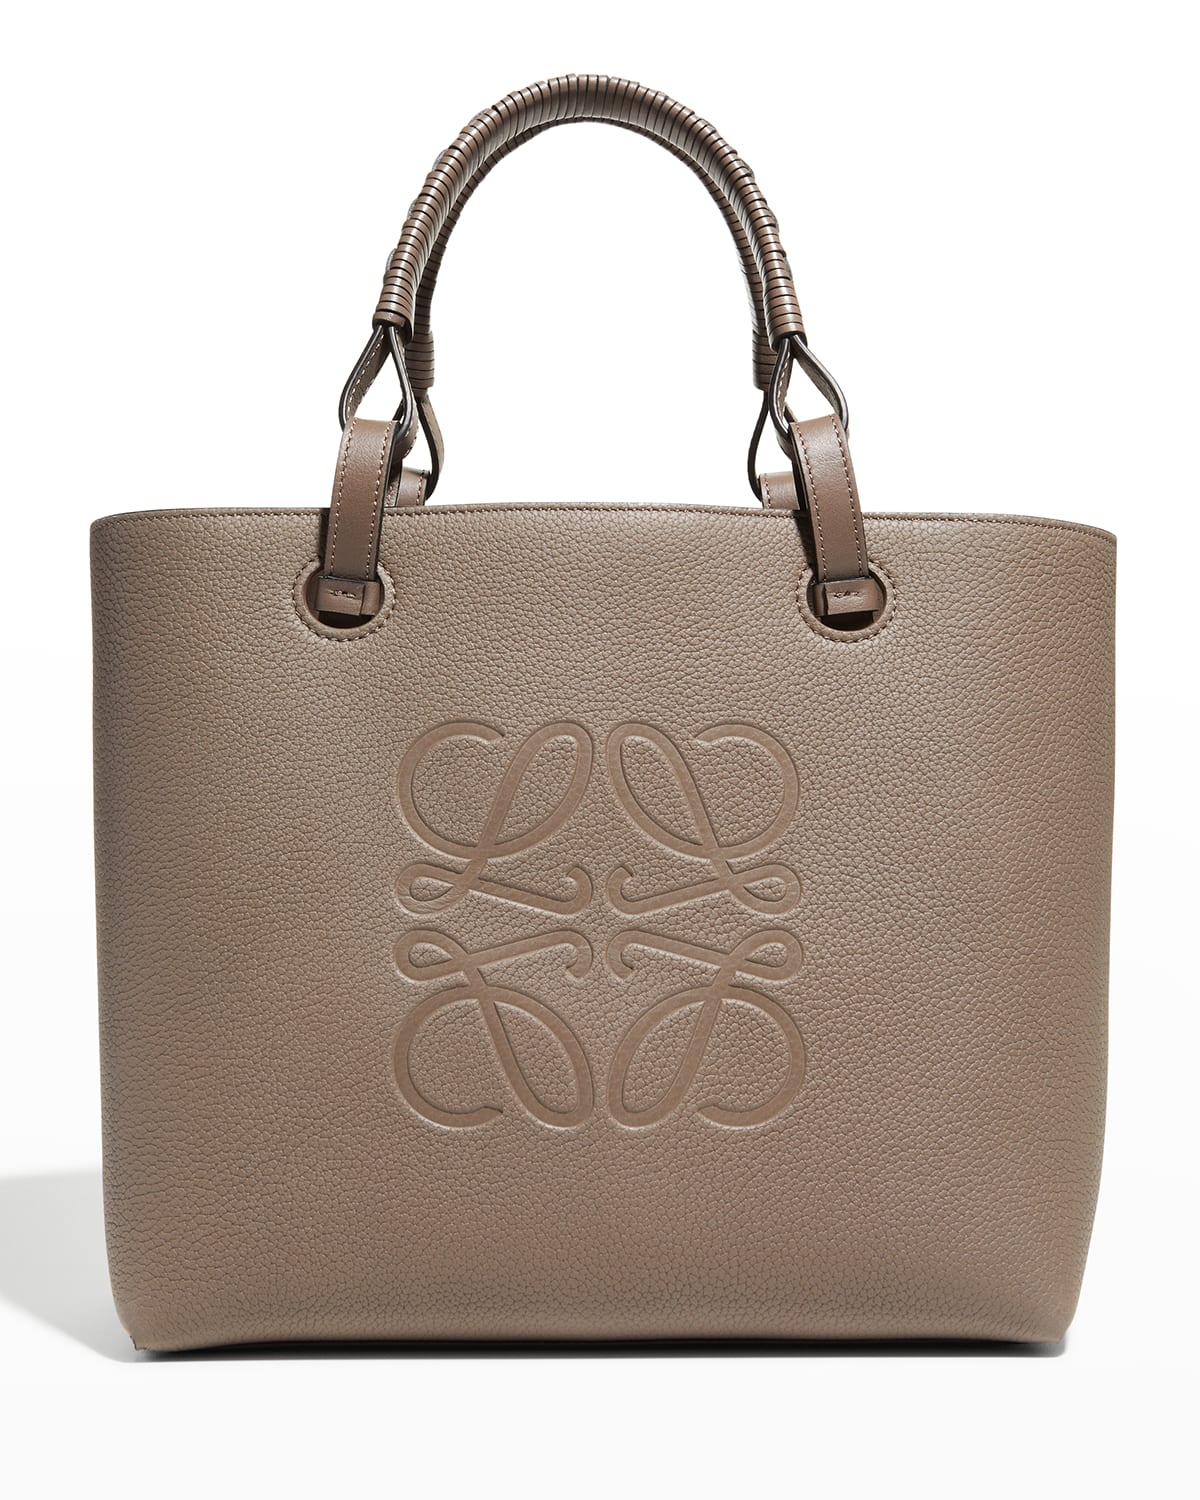 Anagram Small Classic Leather Tote Bag